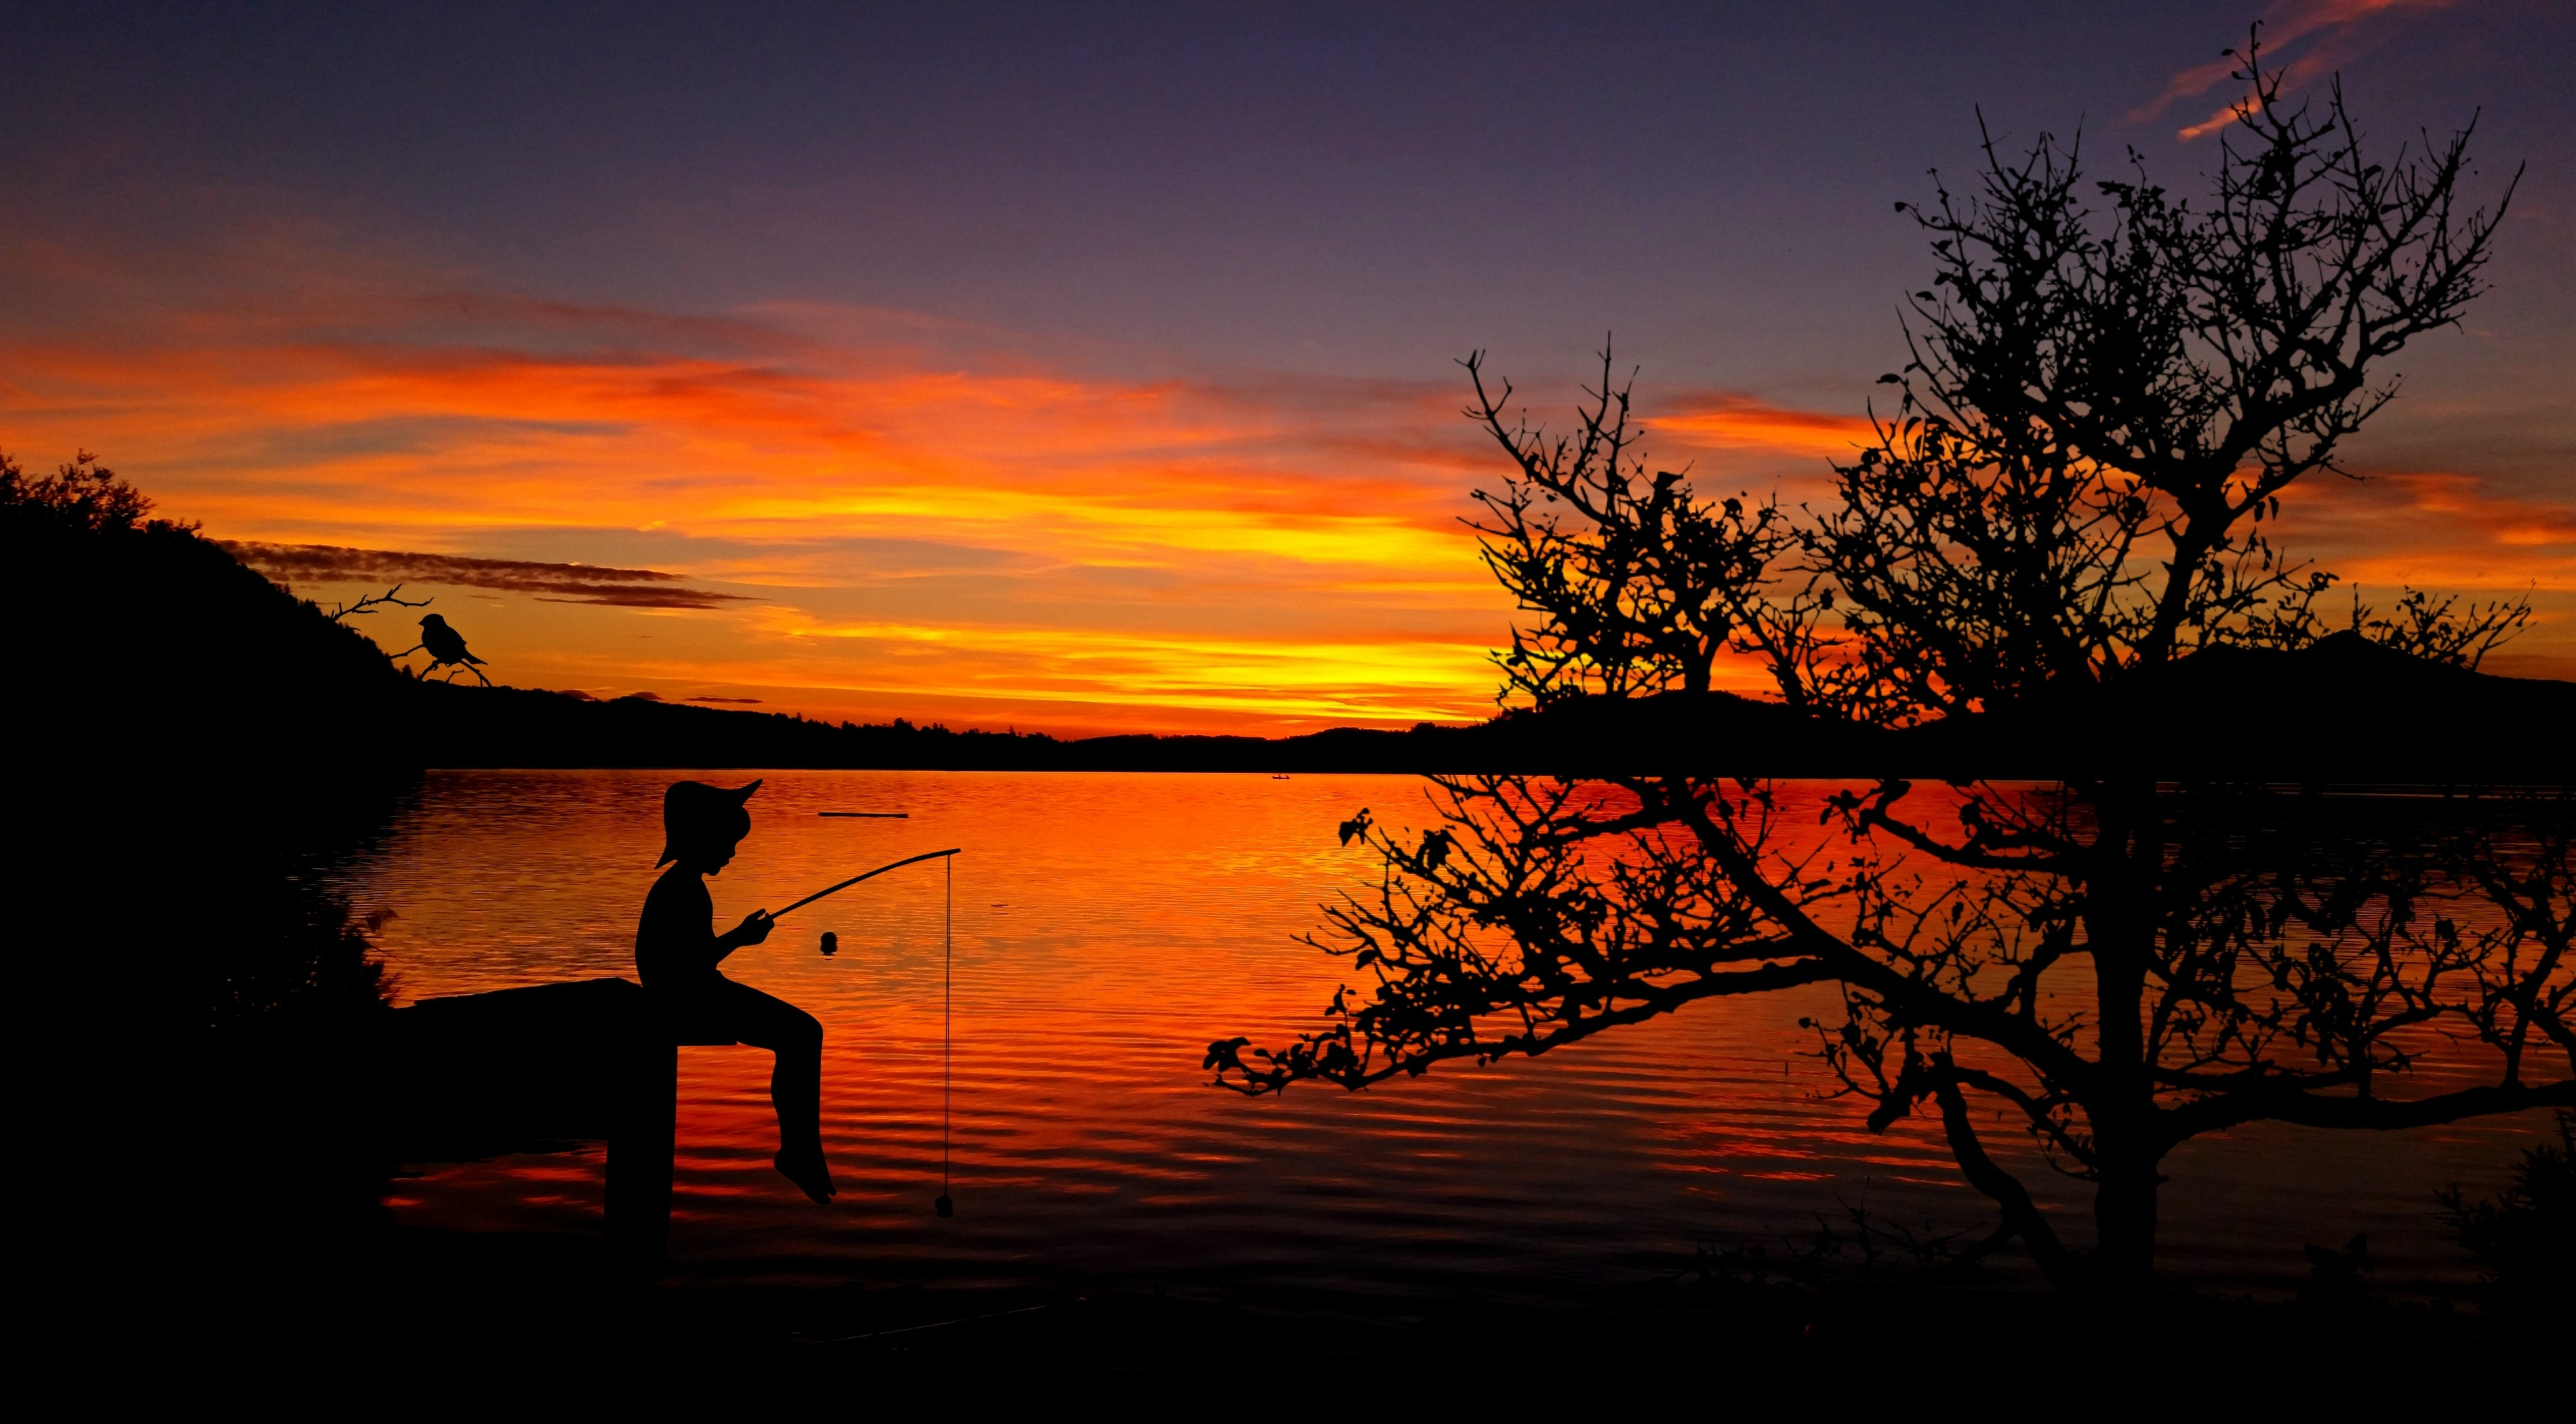 Silhouette Of Person Fishing Free Stock Photo